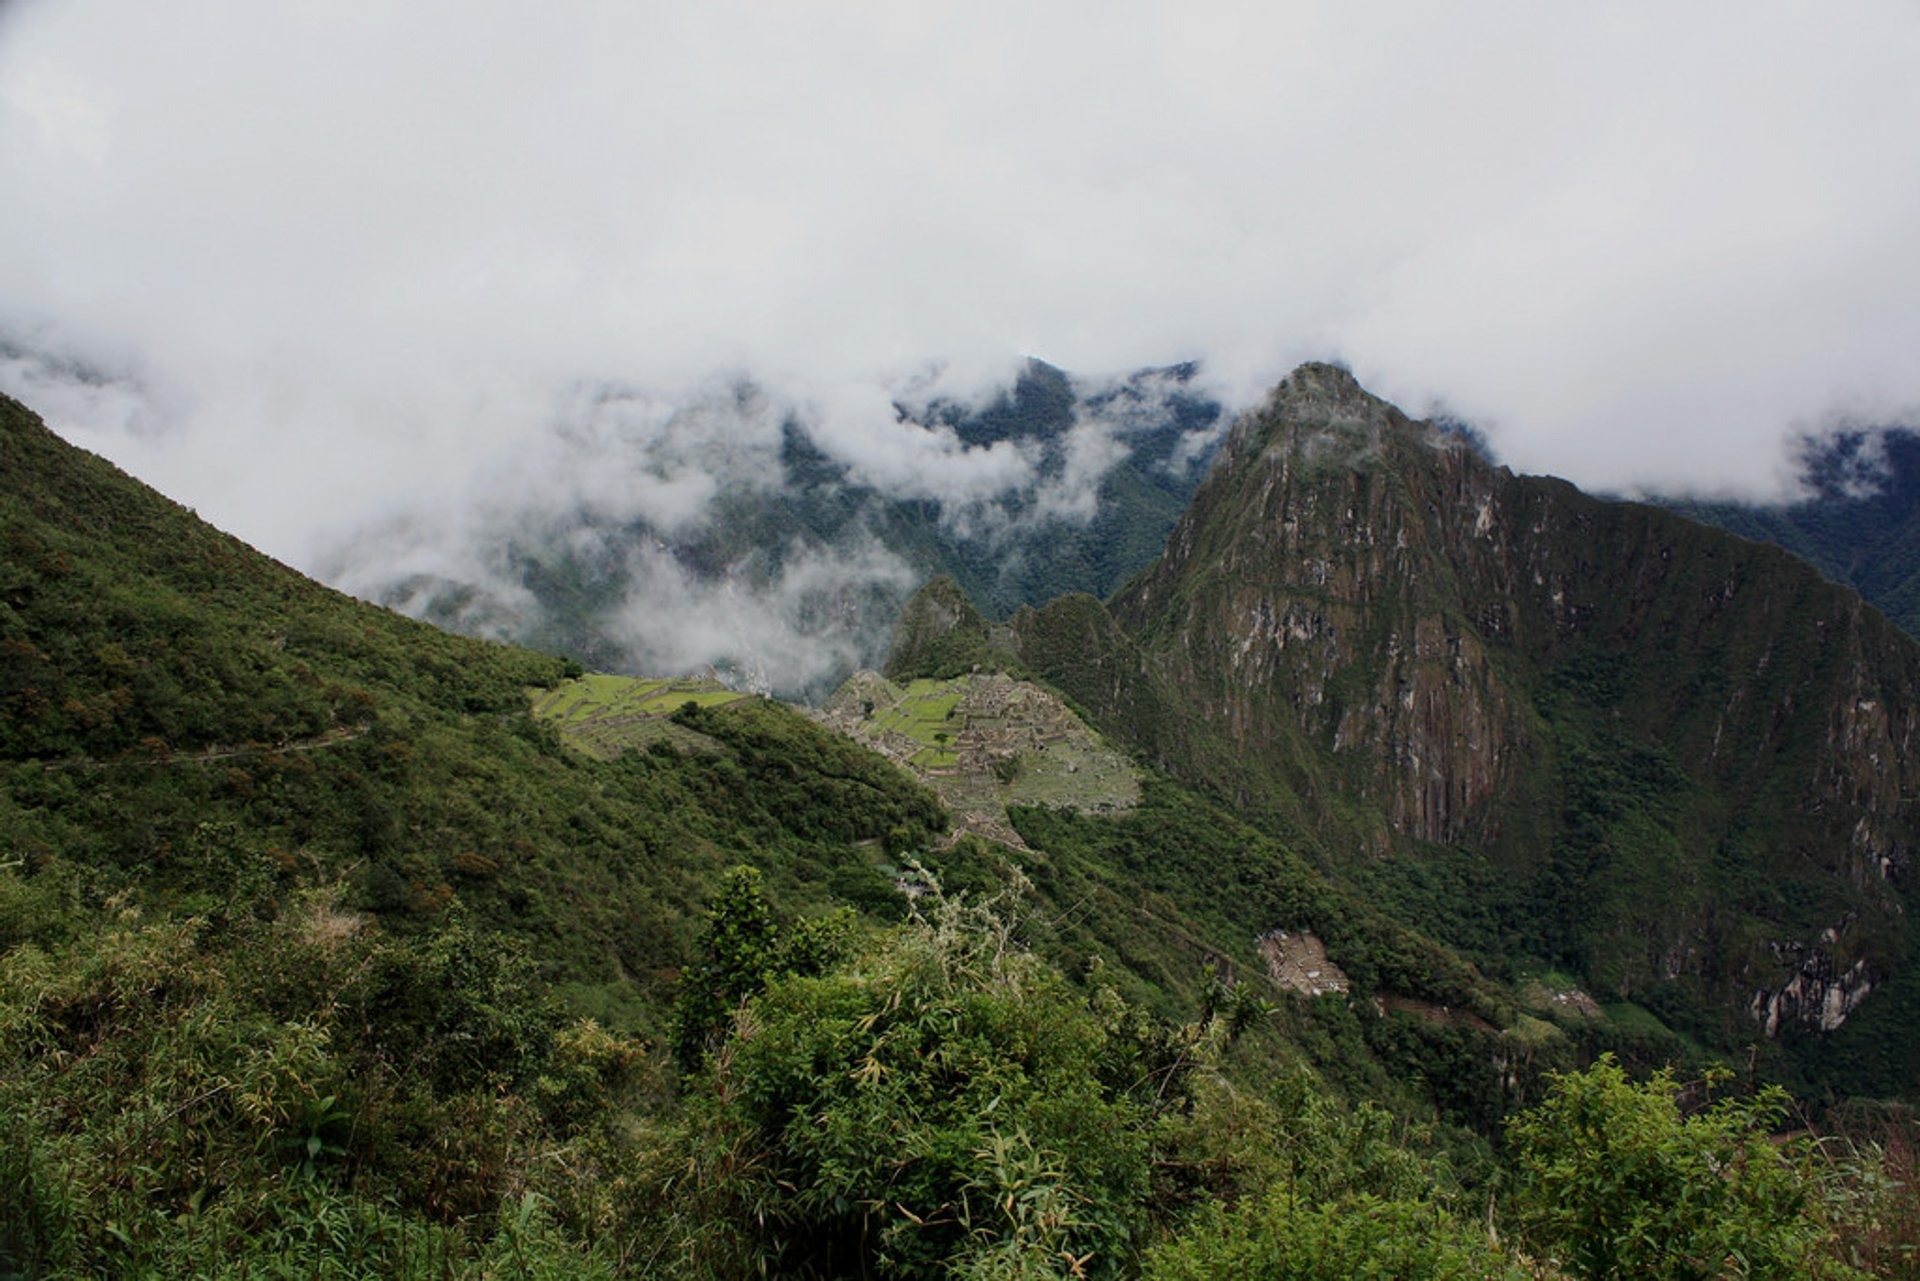 Rainy Season in the Andes and Amazon in Peru 2020 - Best Time